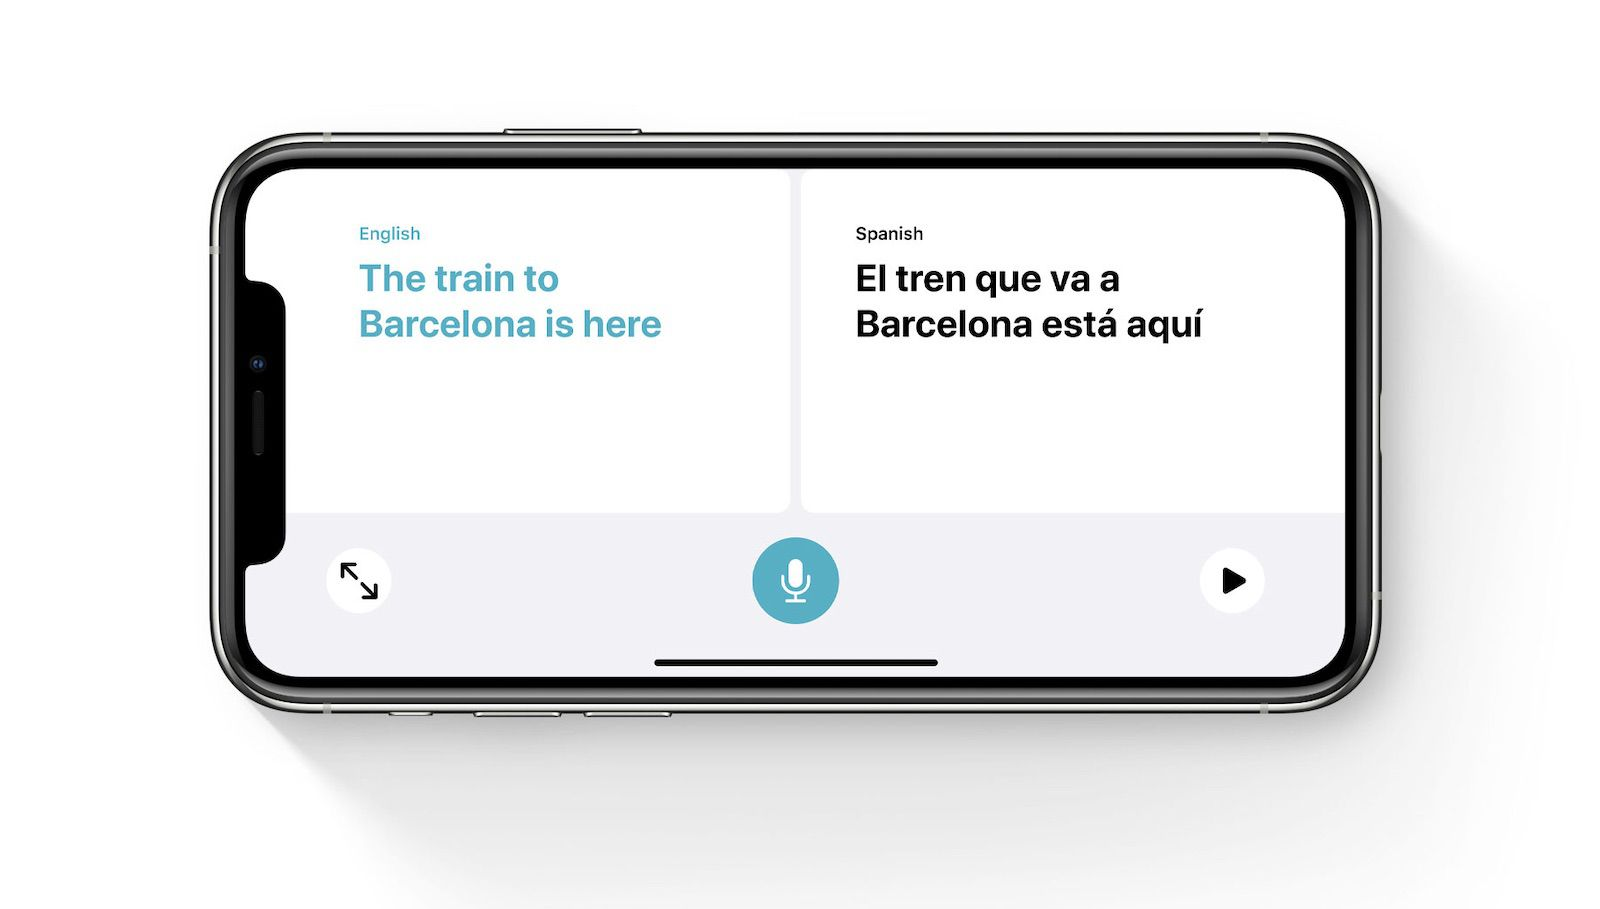 iOS 14 Features New Translate App With Support for 11 Languages and Offline  Mode - MacRumors